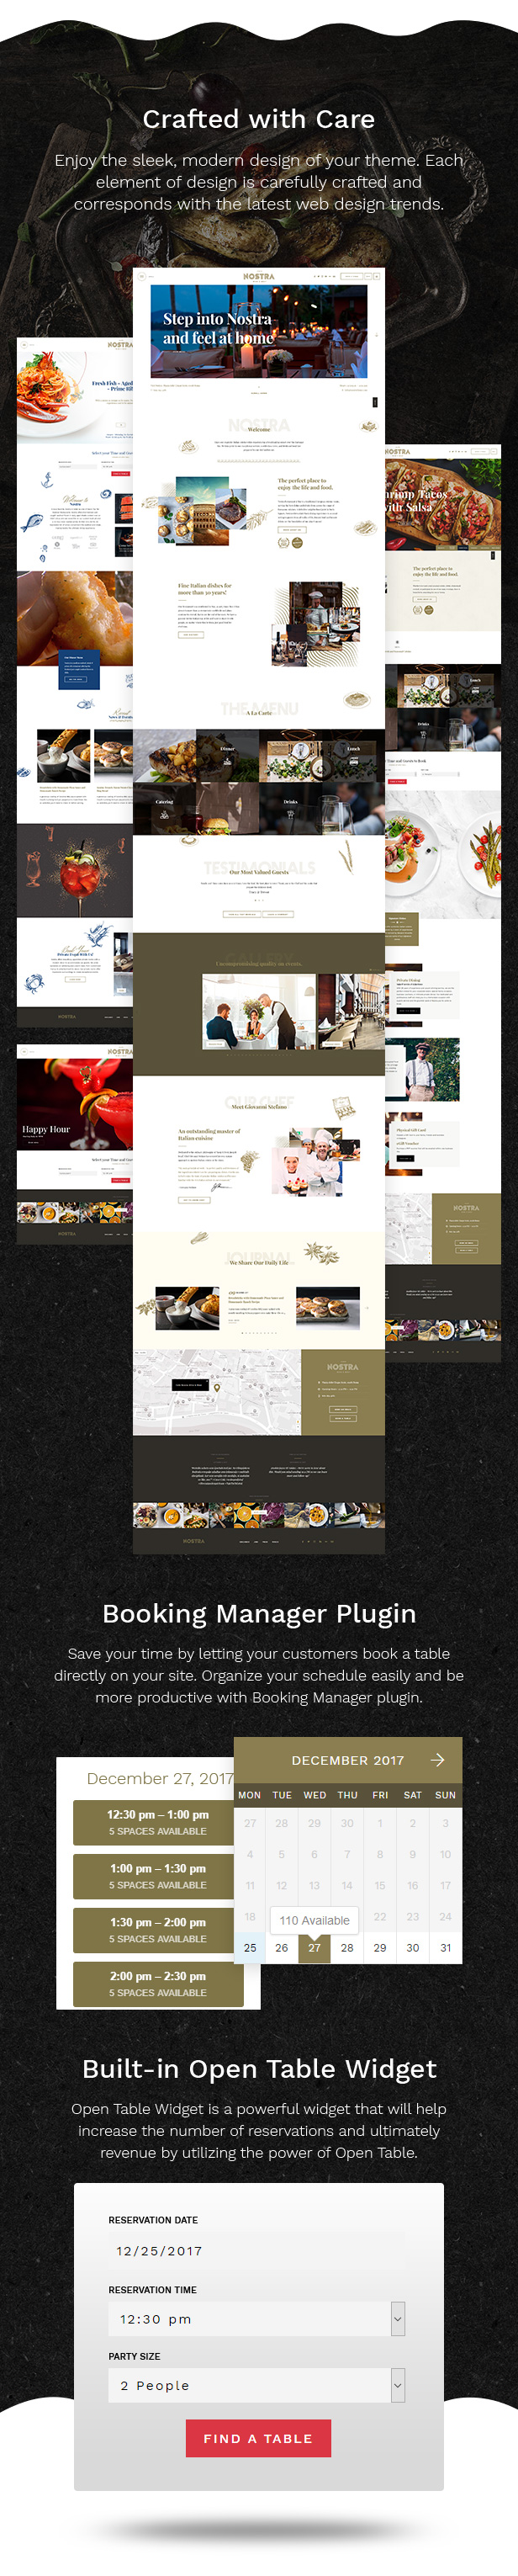 nostra - an elegant cafe & restaurant wordpress theme (restaurants & cafes) Nostra – An Elegant Cafe & Restaurant WordPress Theme (Restaurants & Cafes) 6